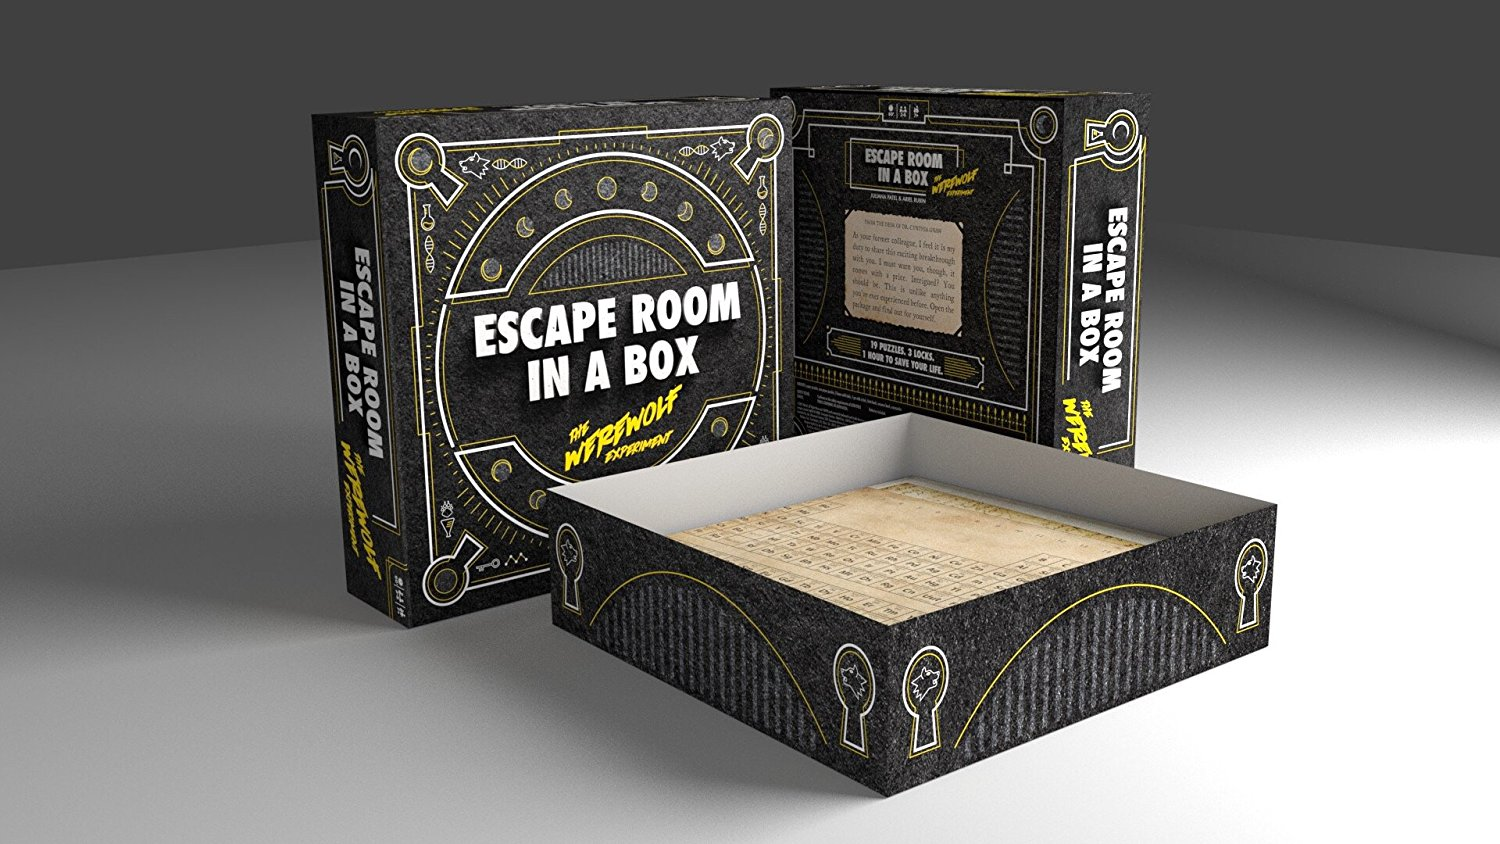 If you like escape rooms, here's one in a box you can play at home for $30